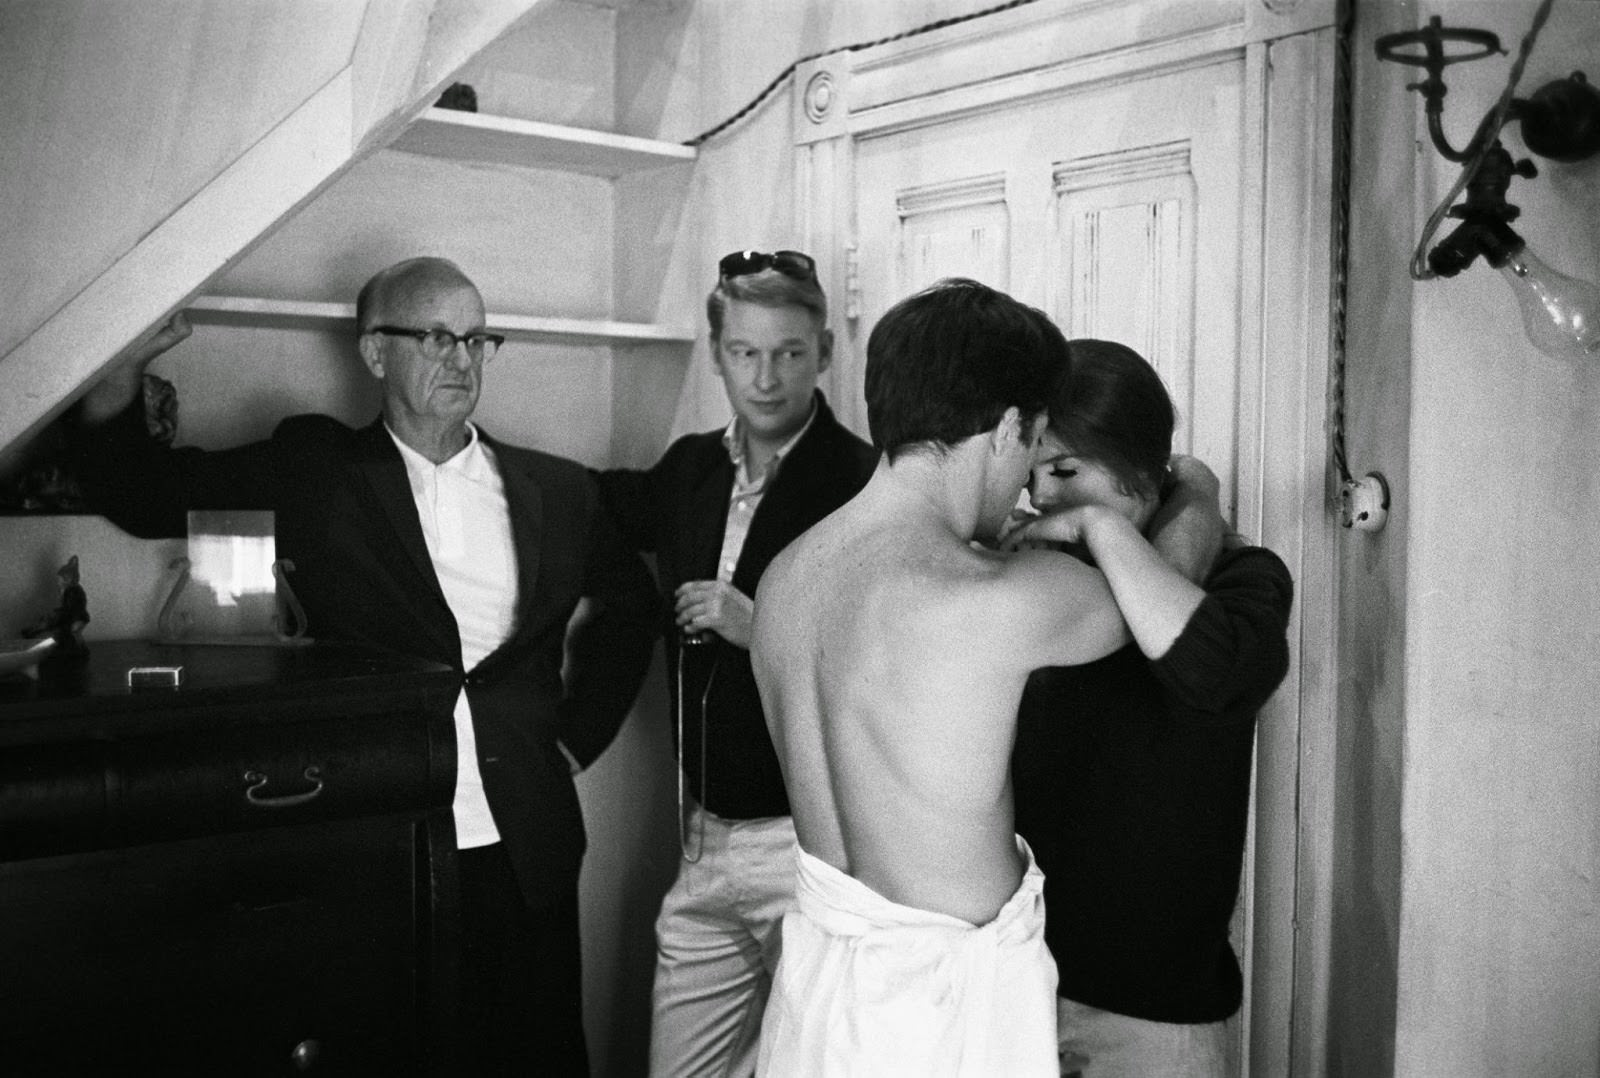 """Mike Nichols on his rehearsal set of """"The Graduate,"""" with cinematographer Robert Surtees, Dustin Hoffman and Katharine Ross, 1967"""